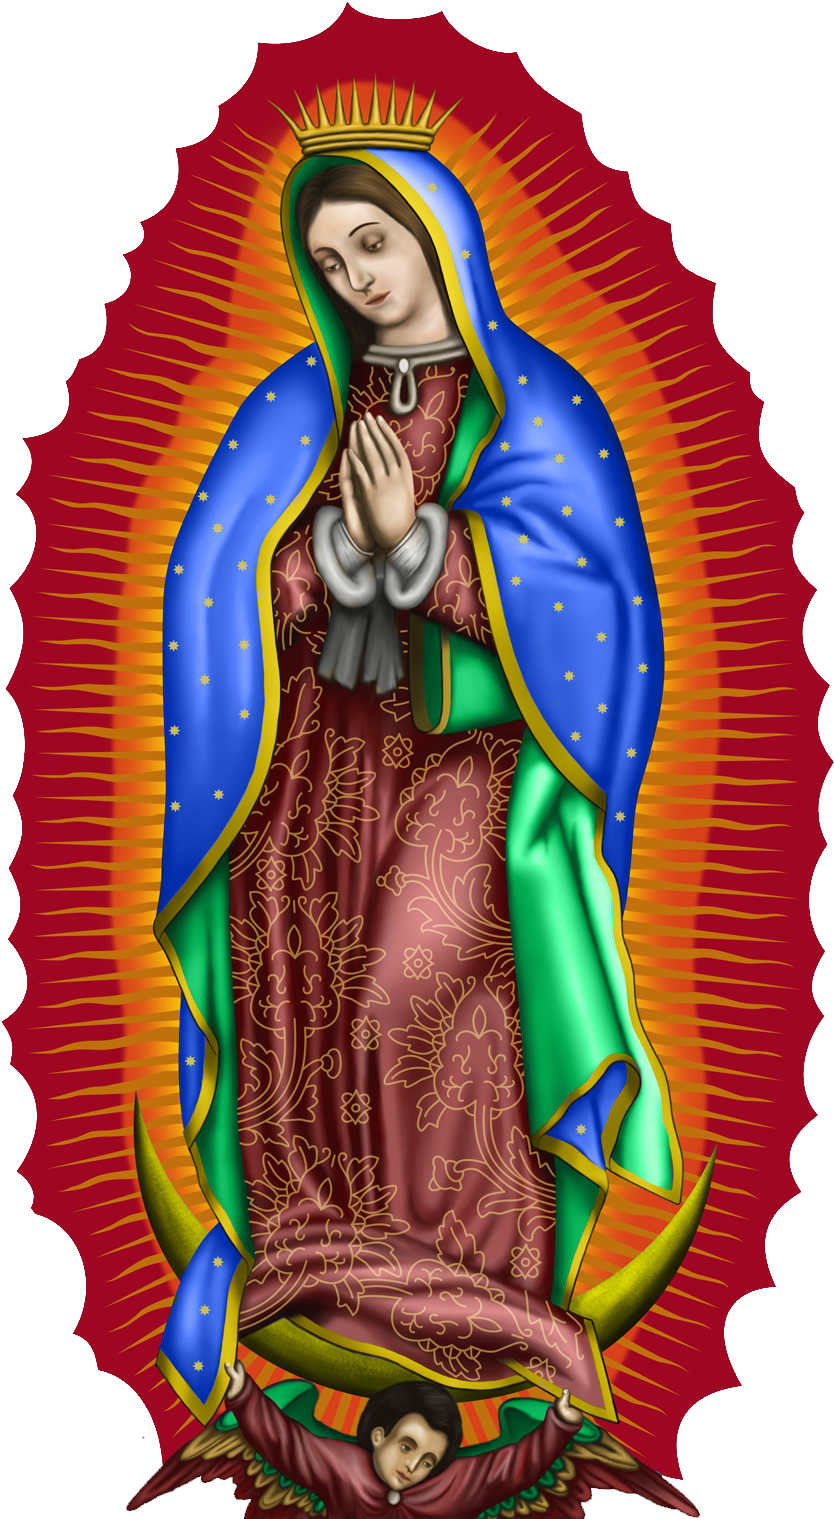 HD Virgen De Guadalupe Phone Case Transparent PNG Image Download.